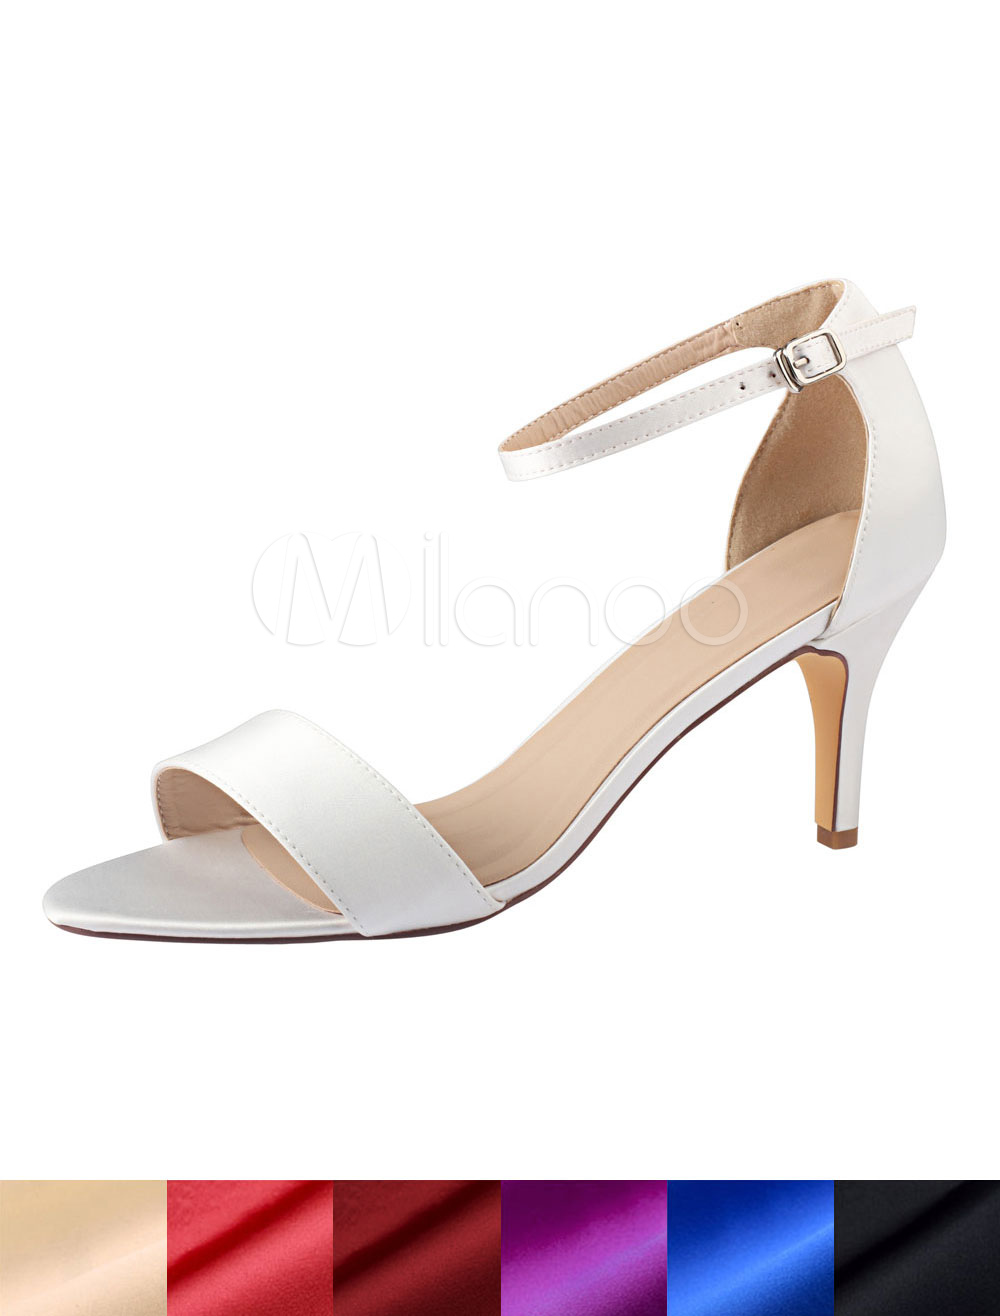 Buy Ivory Wedding Shoes Silk Open Toe Ankle Strap Bridal Shoes High Heel Sandals for $49.99 in Milanoo store